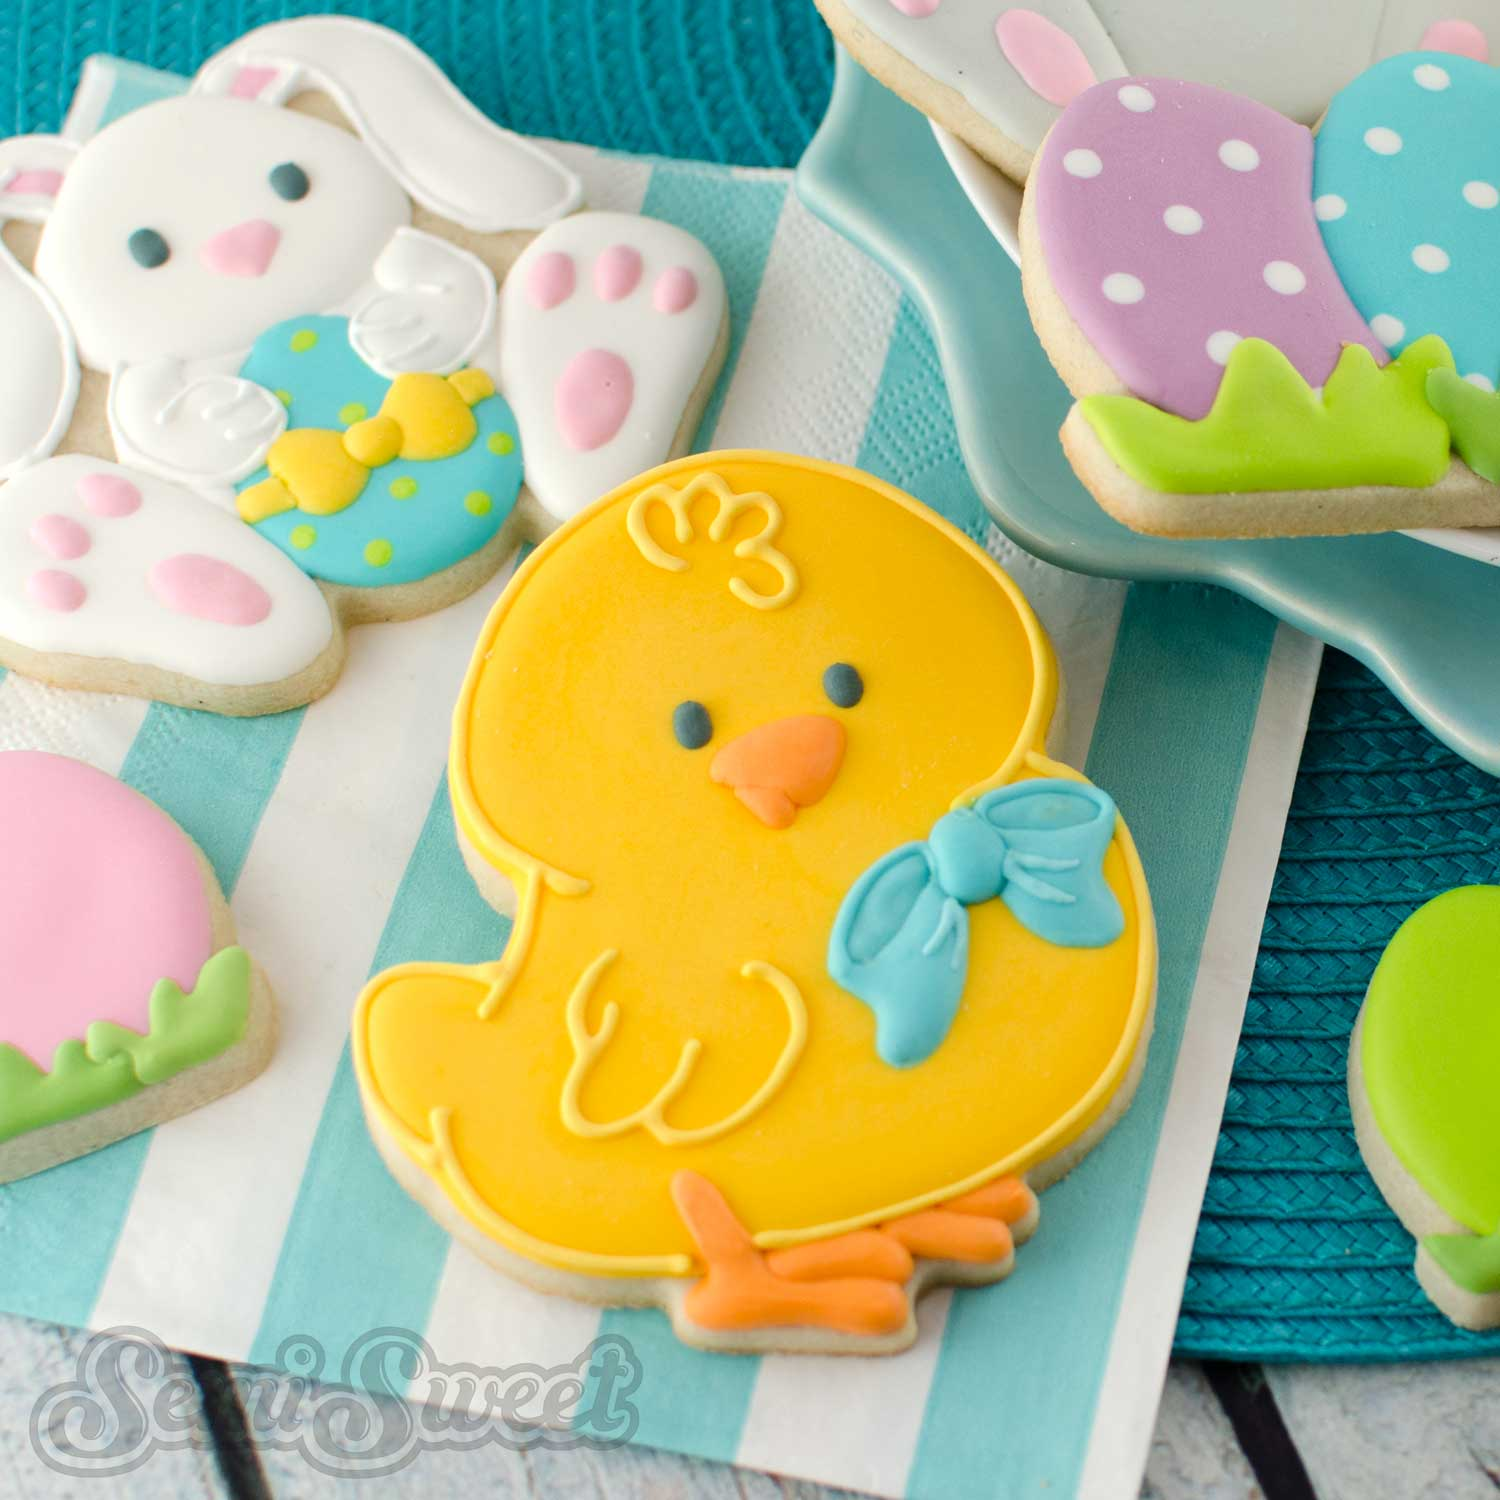 How to Make Easter Chick Cookies by SemiSweetDesigns.com